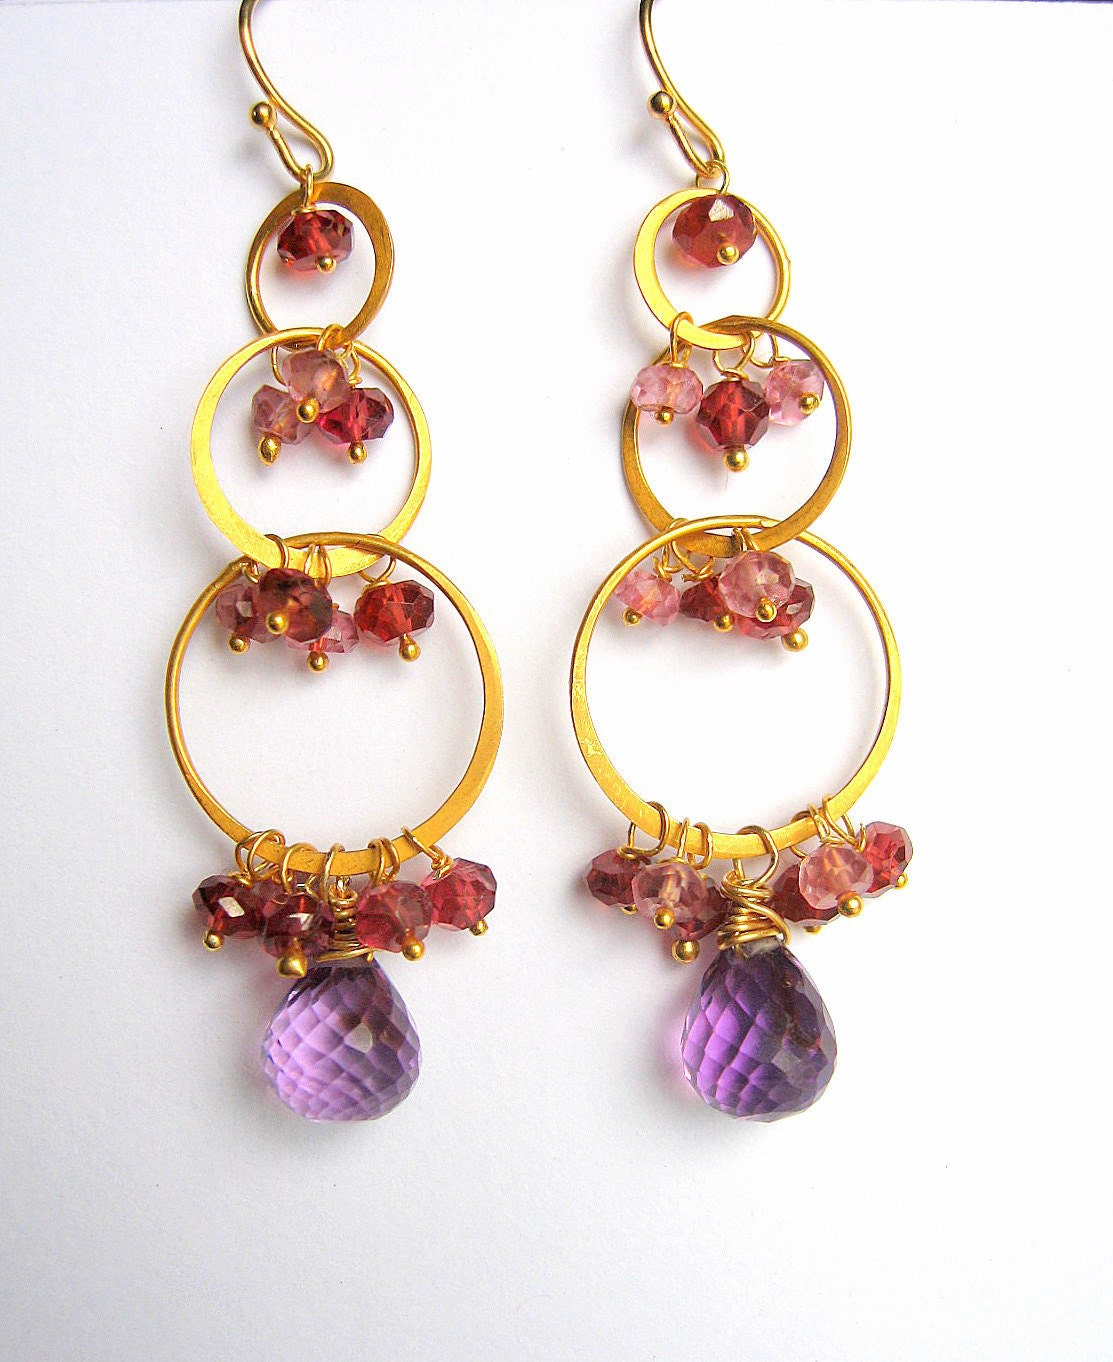 Cascading Gemstone Earrings, Amethyst, Sapphire, Garnet, Gold Vermeil Teardrop Hoops